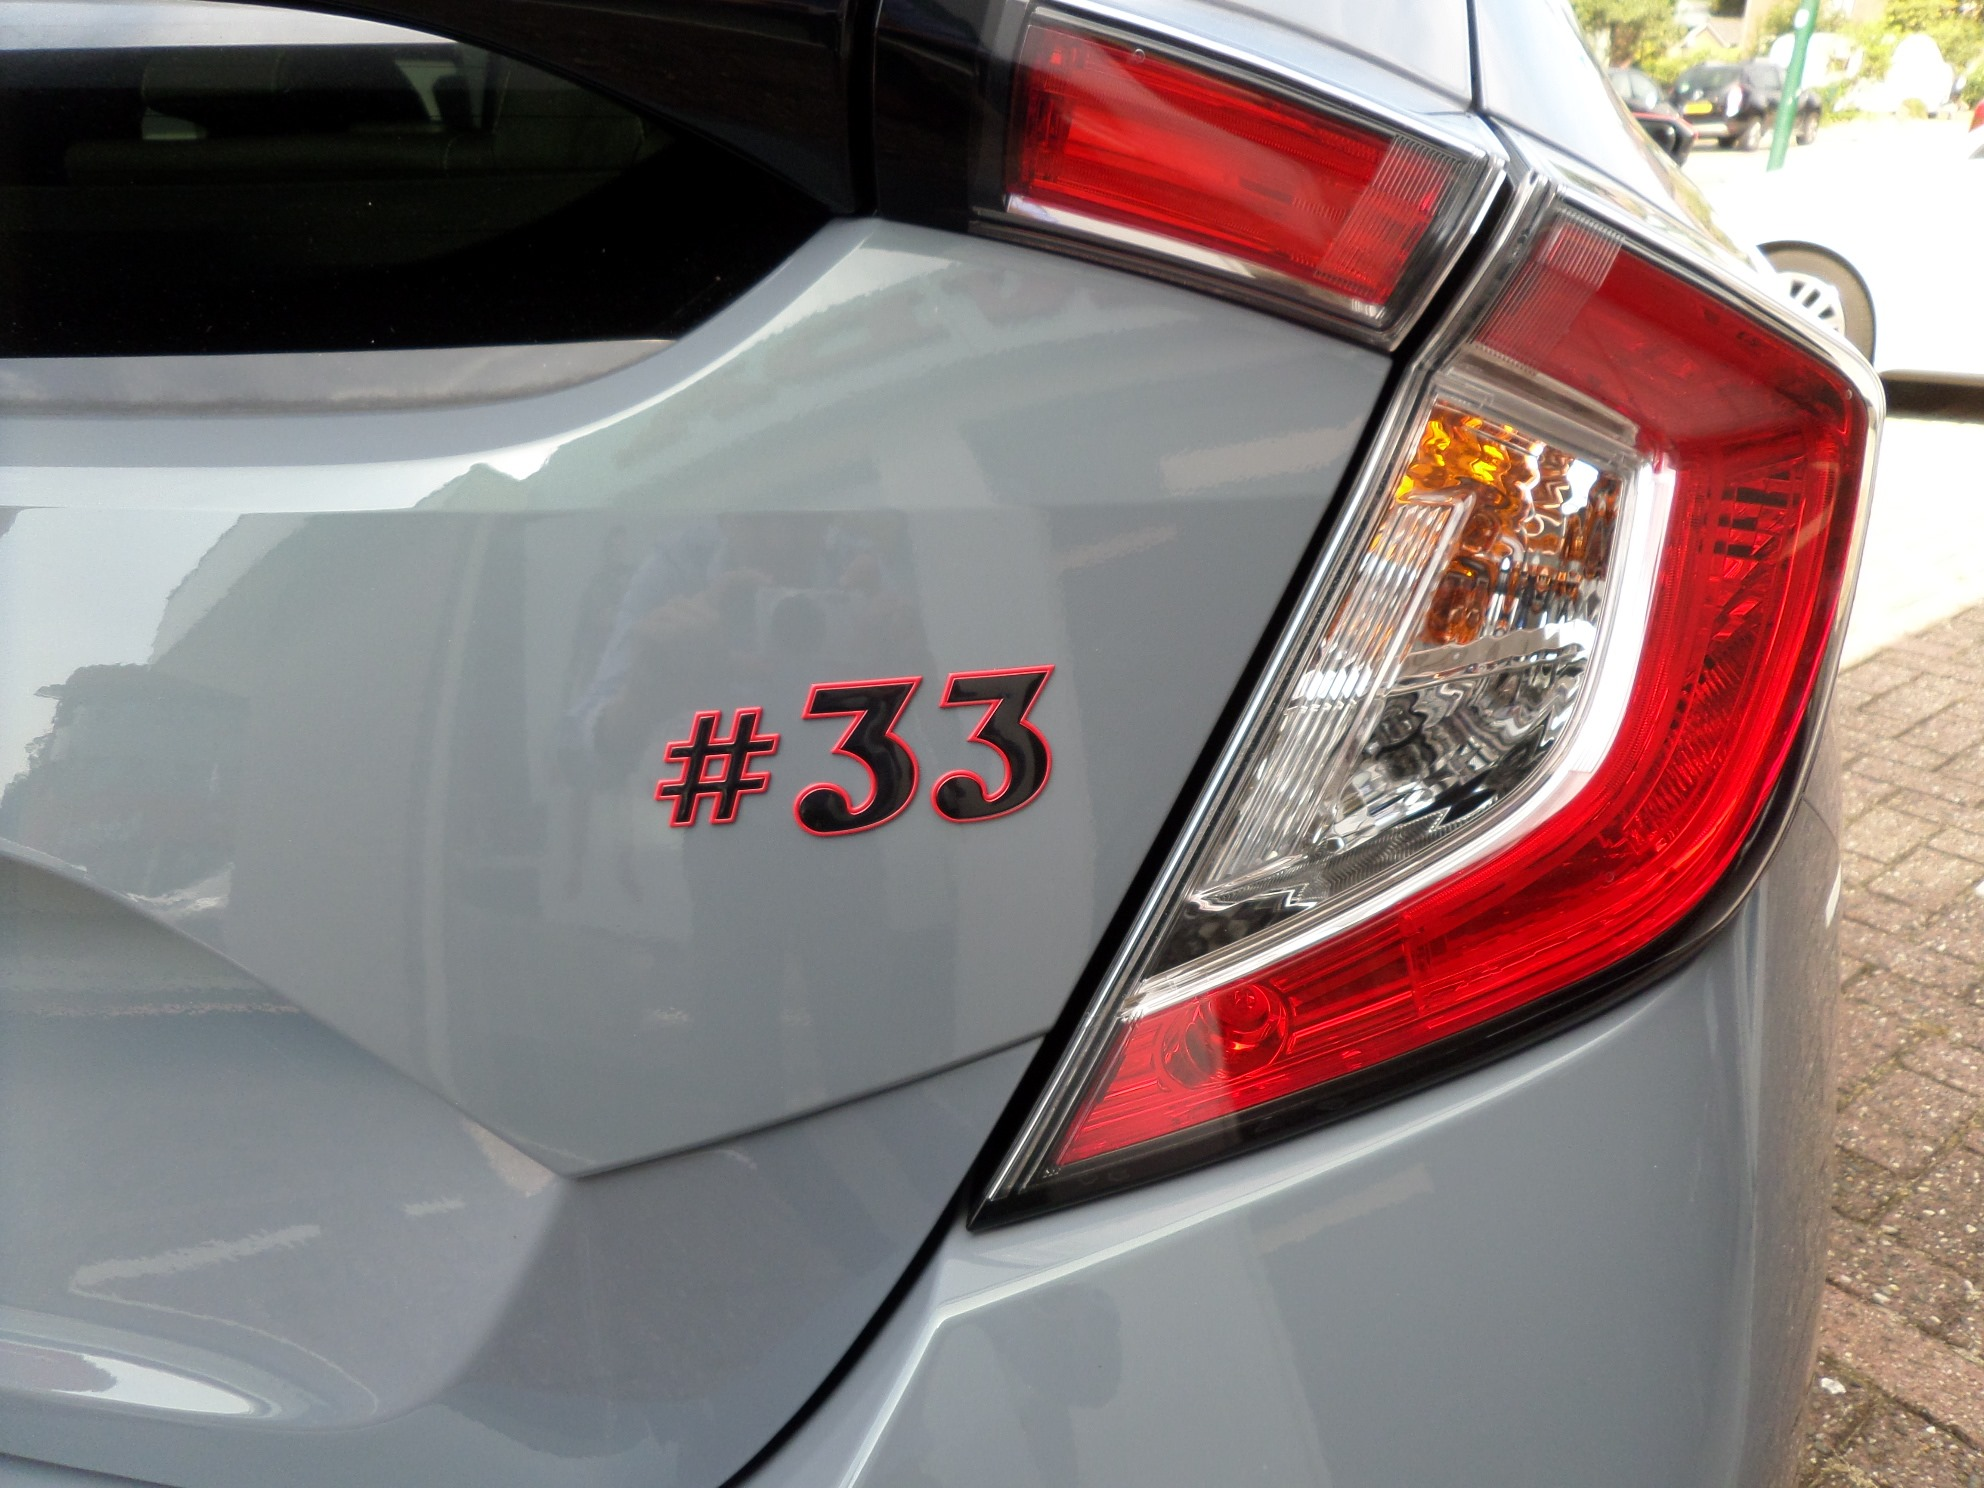 Honda Civic #33